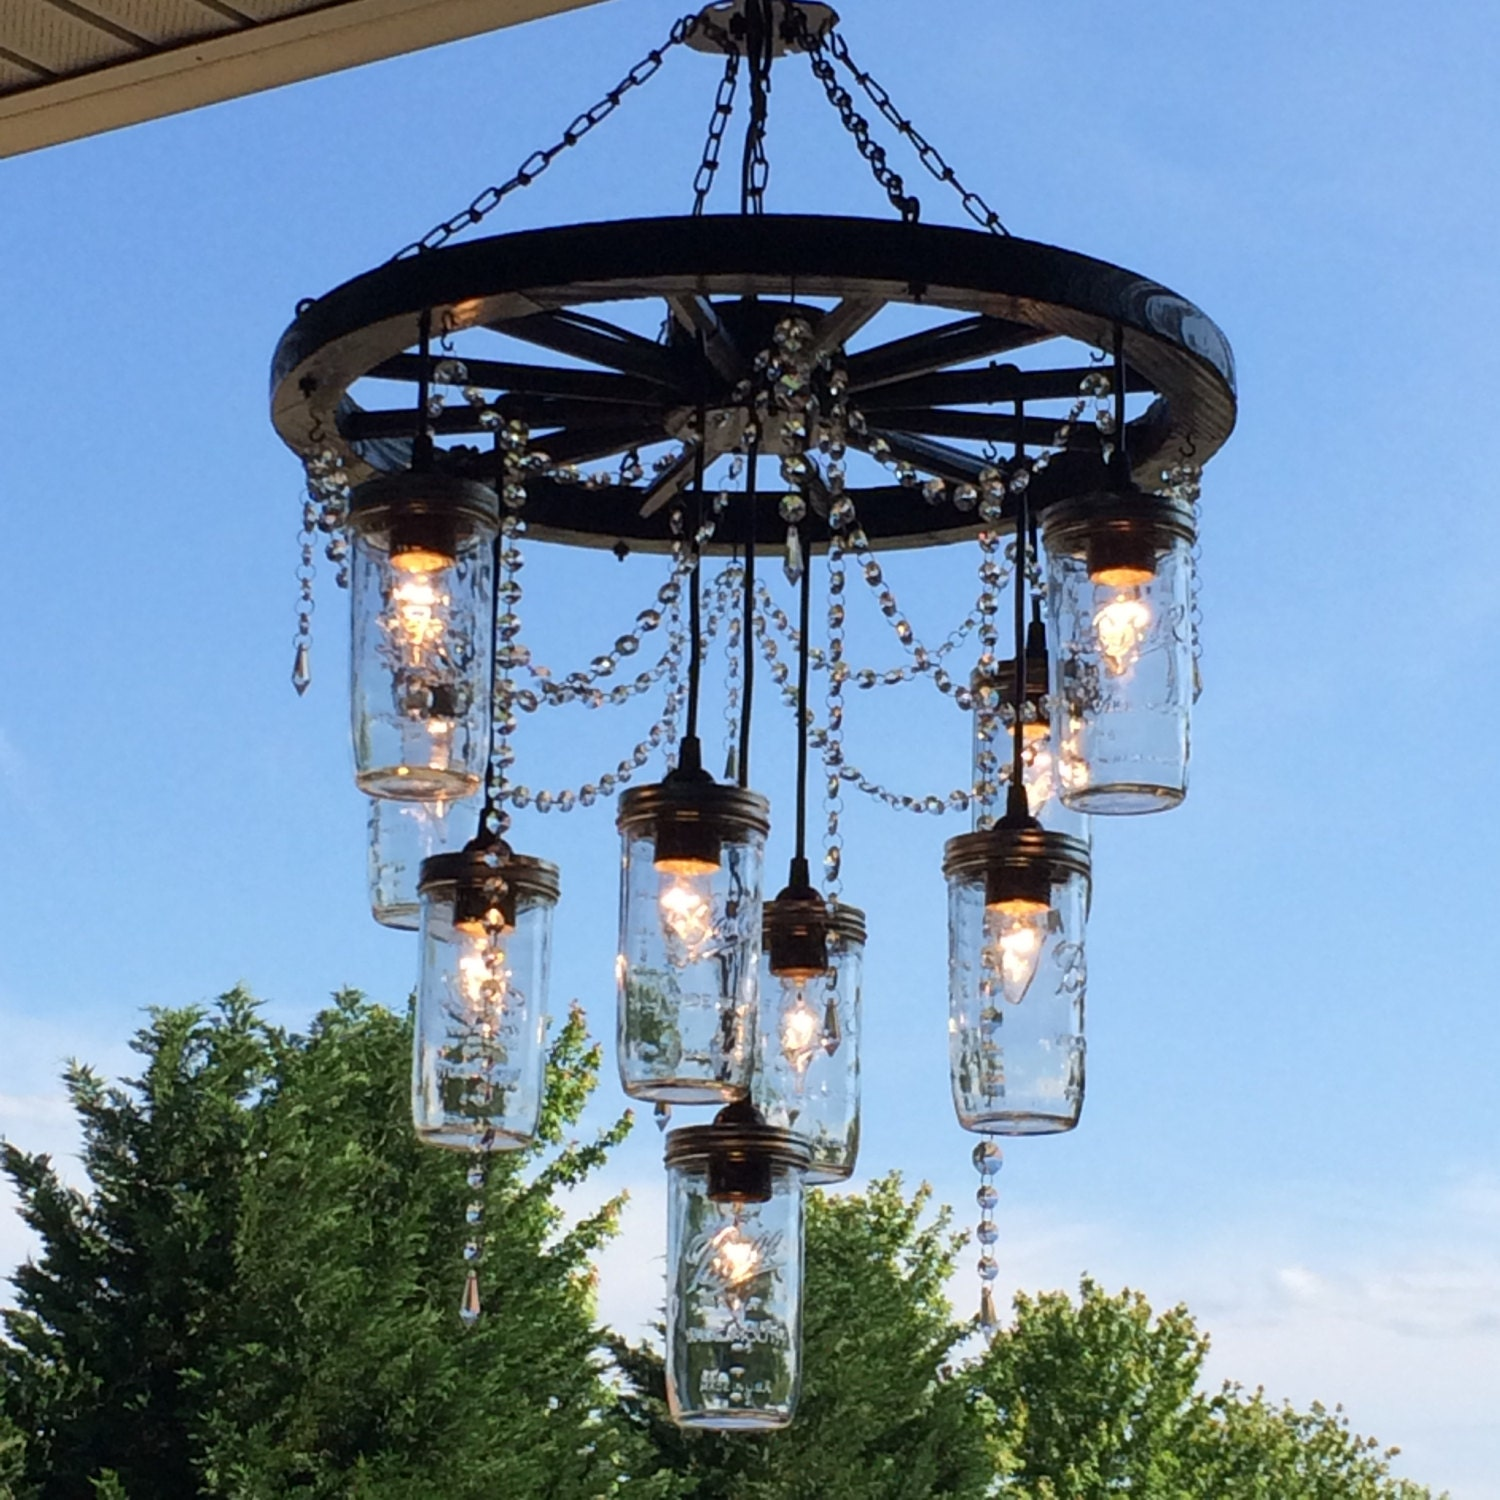 Wagon Wheel Chandelier With 3 Tiers Of Mason Jar Lights